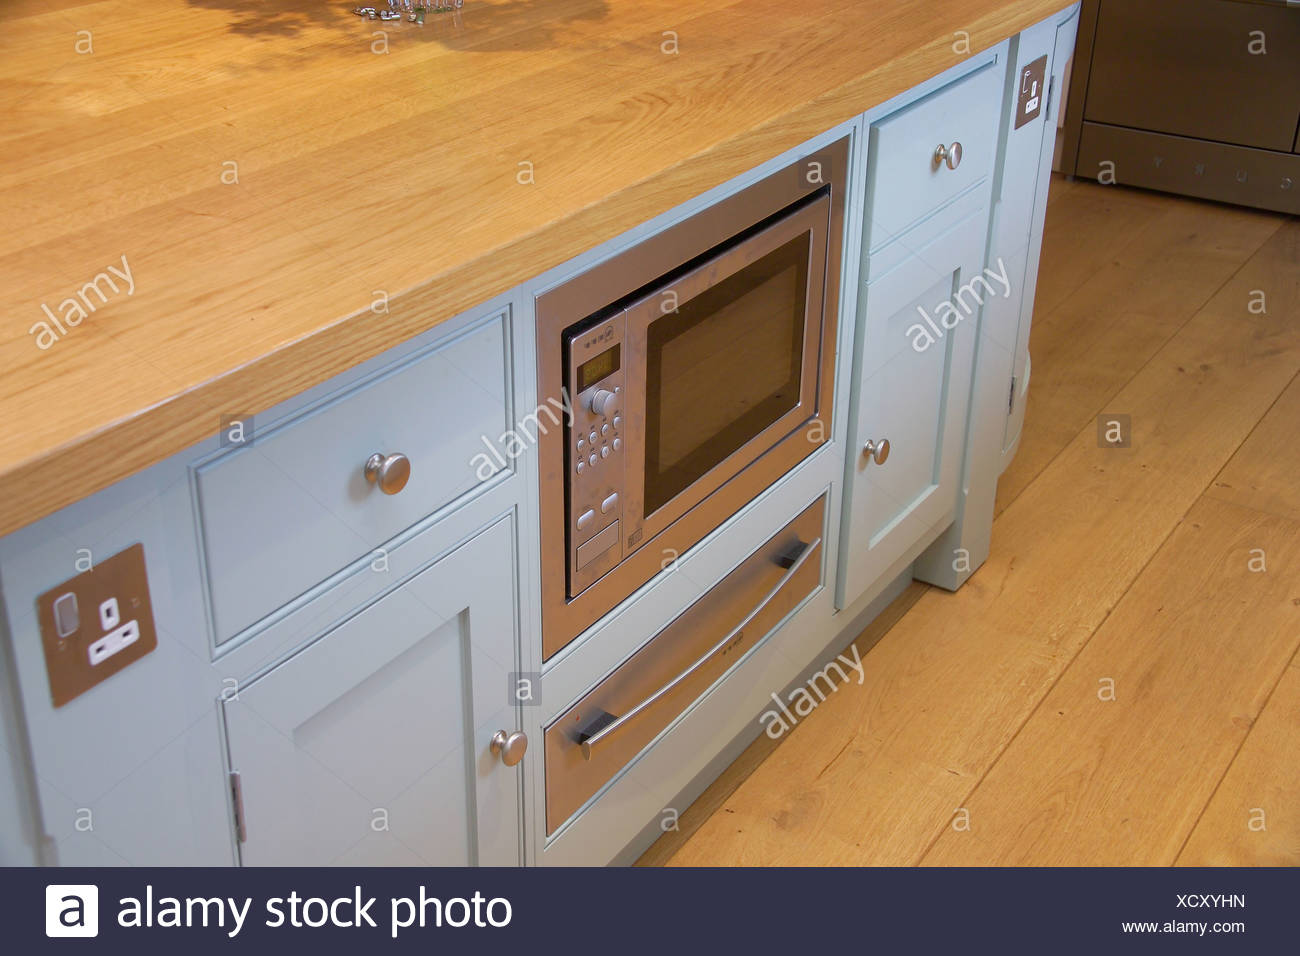 Close up of kitchen unit with built in microwave oven and ...